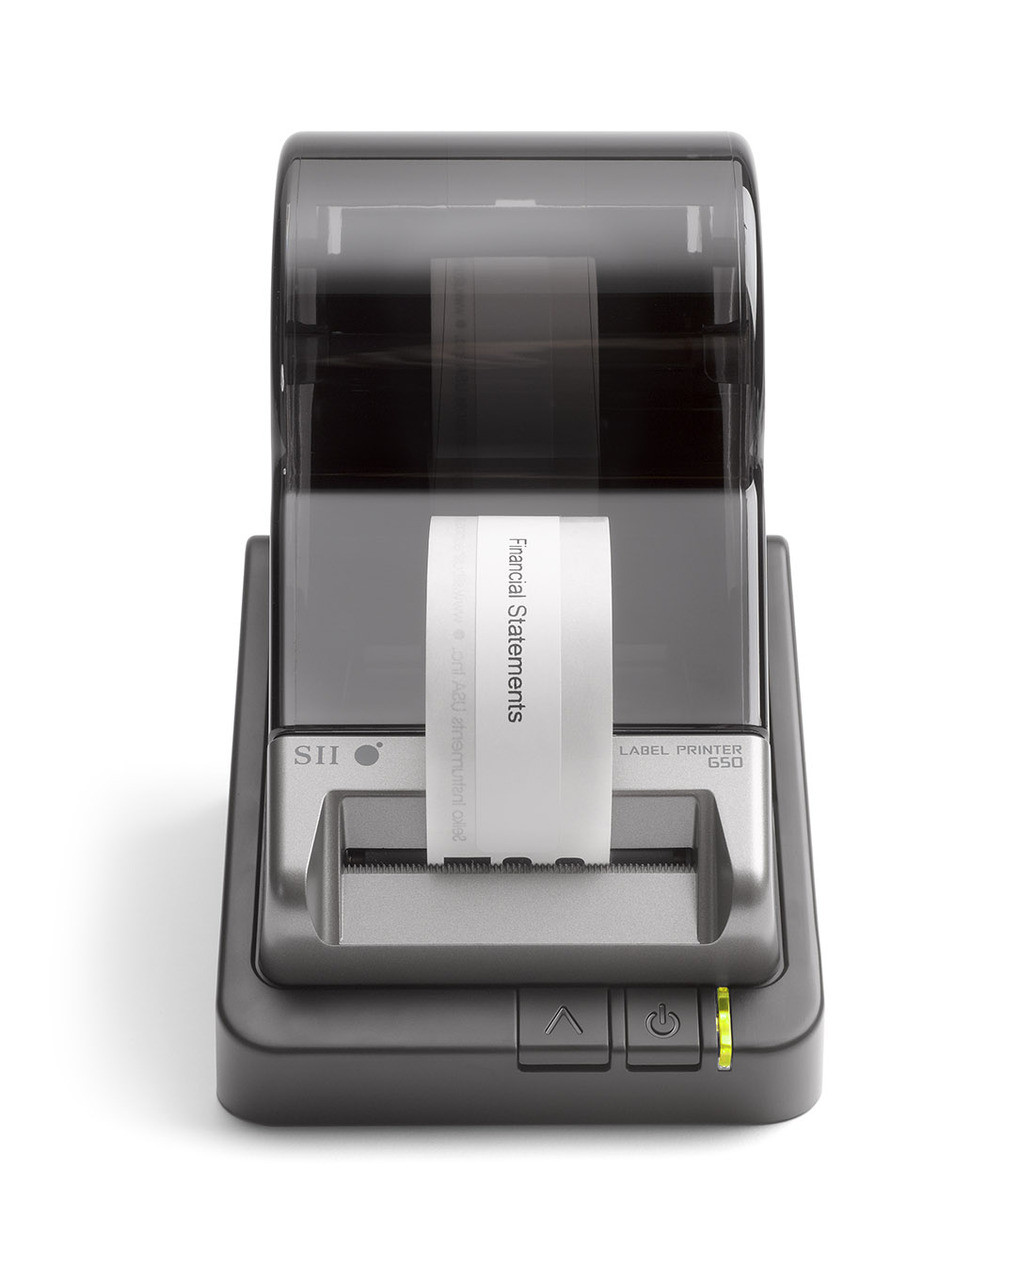 Seiko Smart Label Printer 650